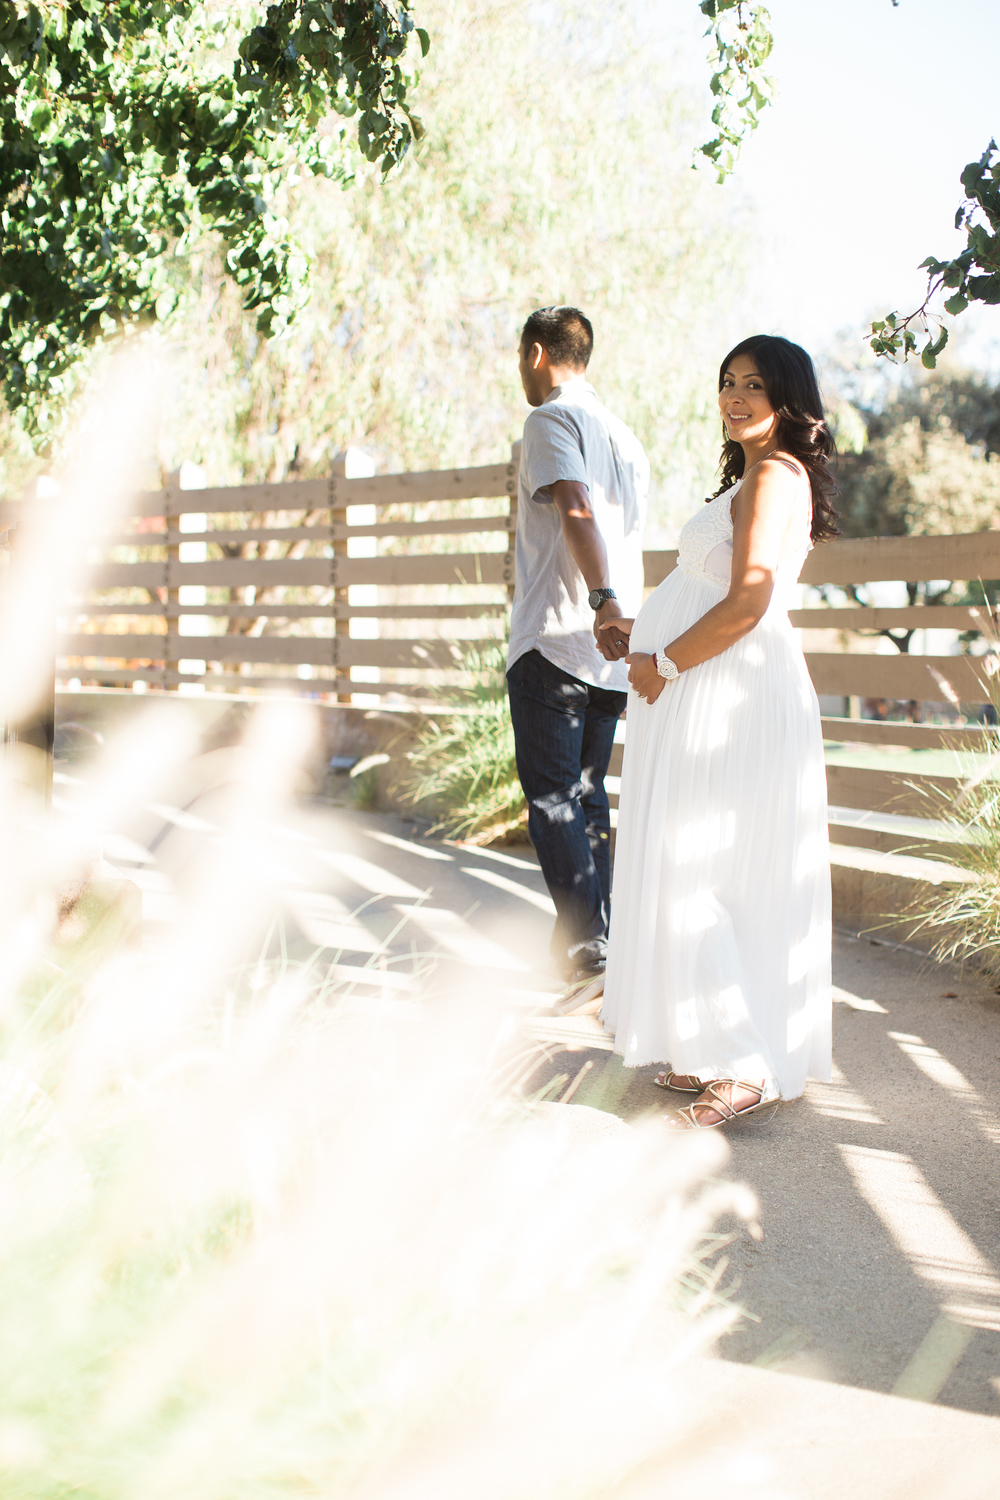 Marcella_Maternity_Cerritos_BrandonJFerlin_Photography-34.jpg